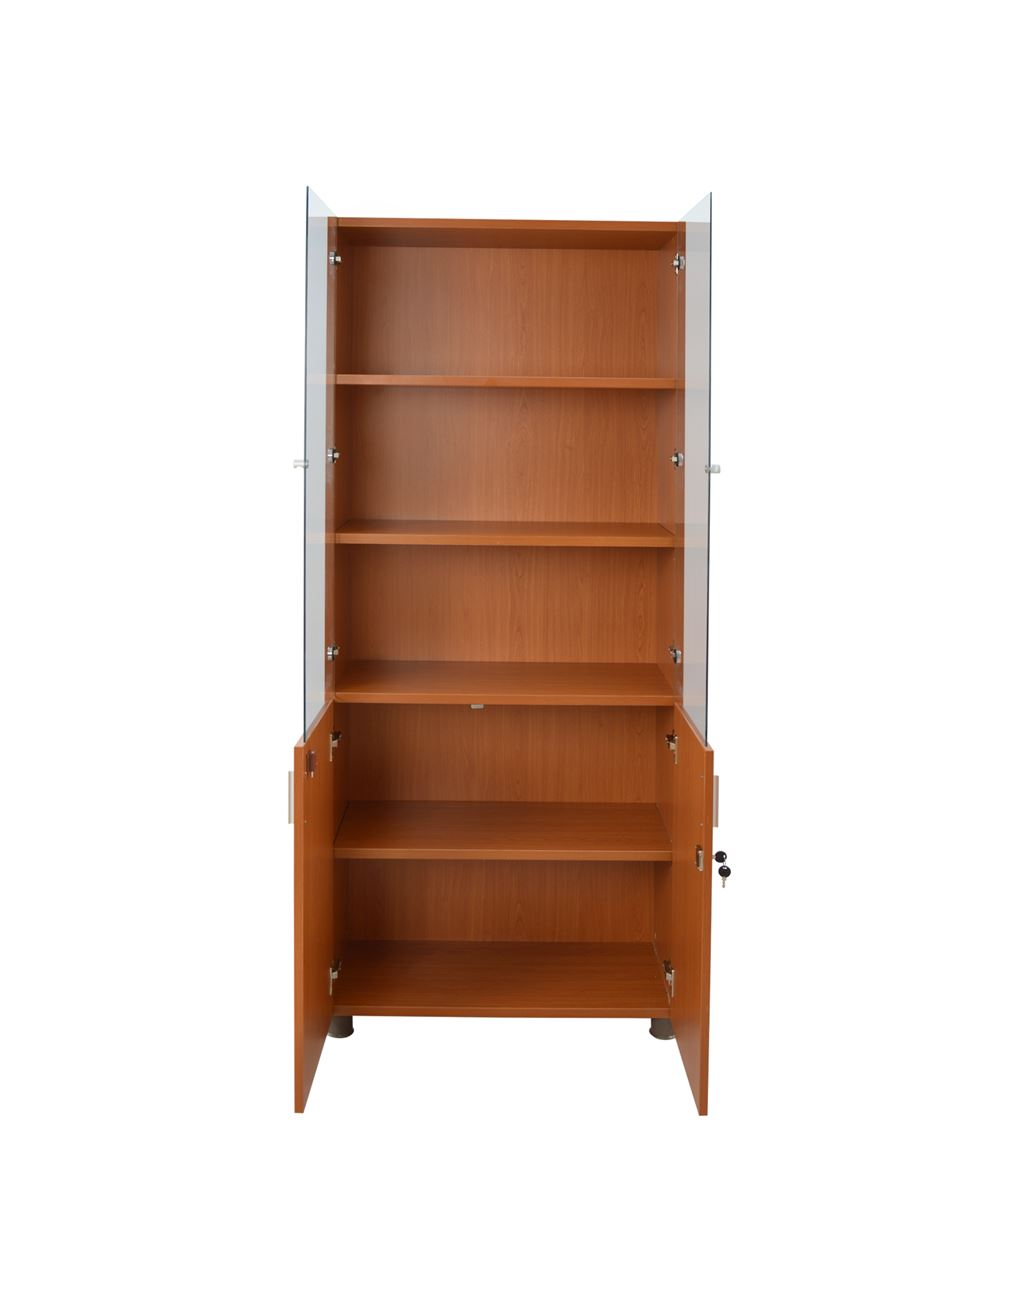 Homemarkt Bookcase In Cherry Color With Glass Doors Hm10208